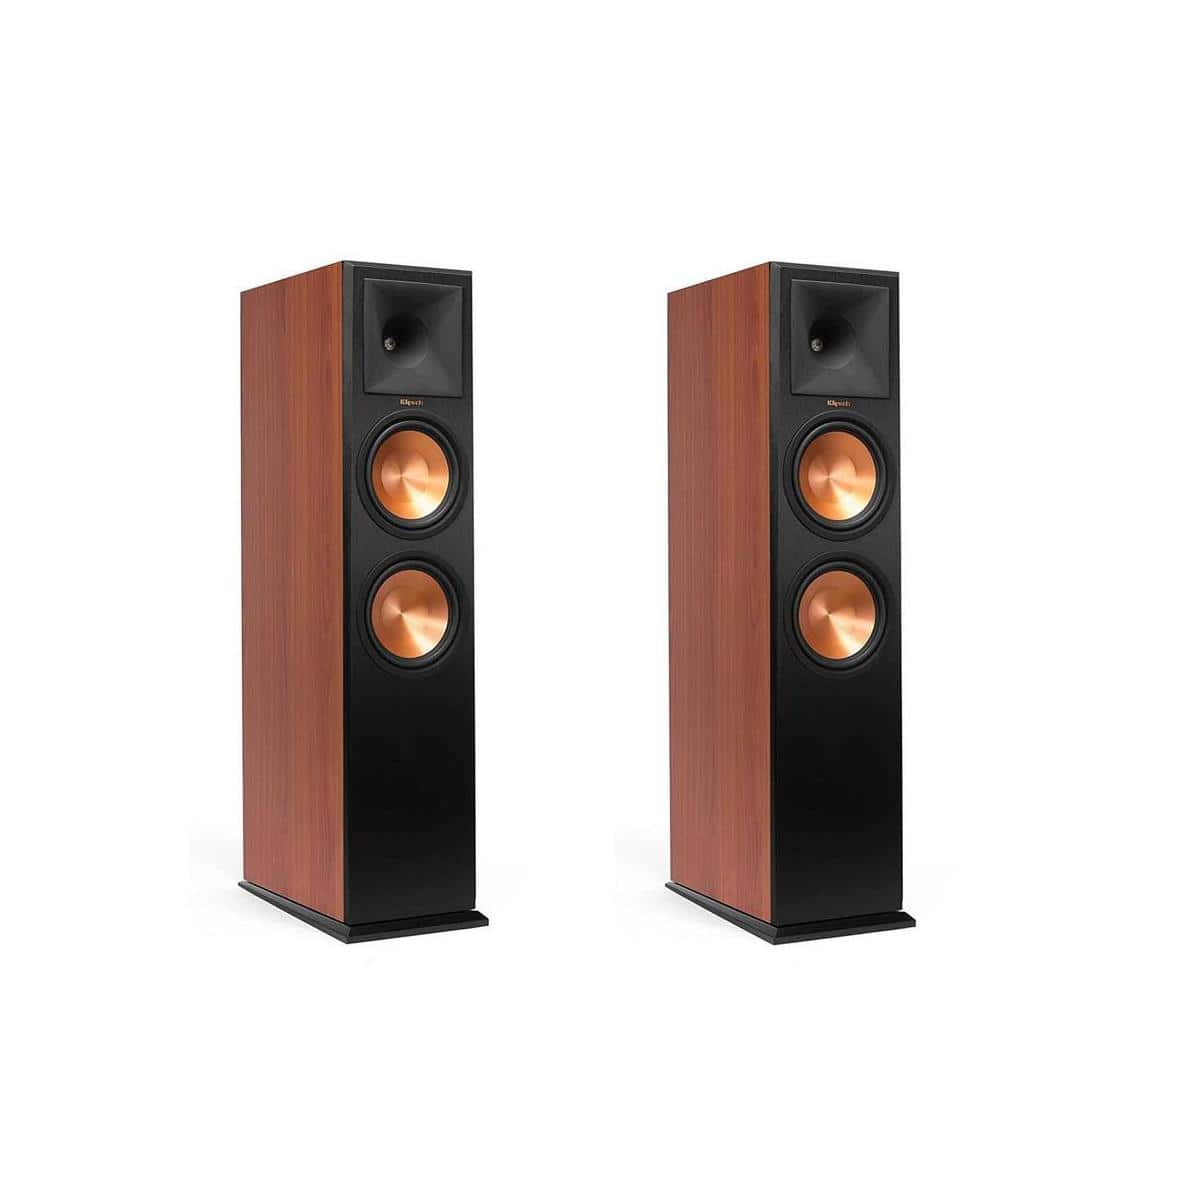 (pair) Klipsch Reference Premiere RP-280FA Floorstanding Atmos Speakers (cherry) $1000 + free shipping